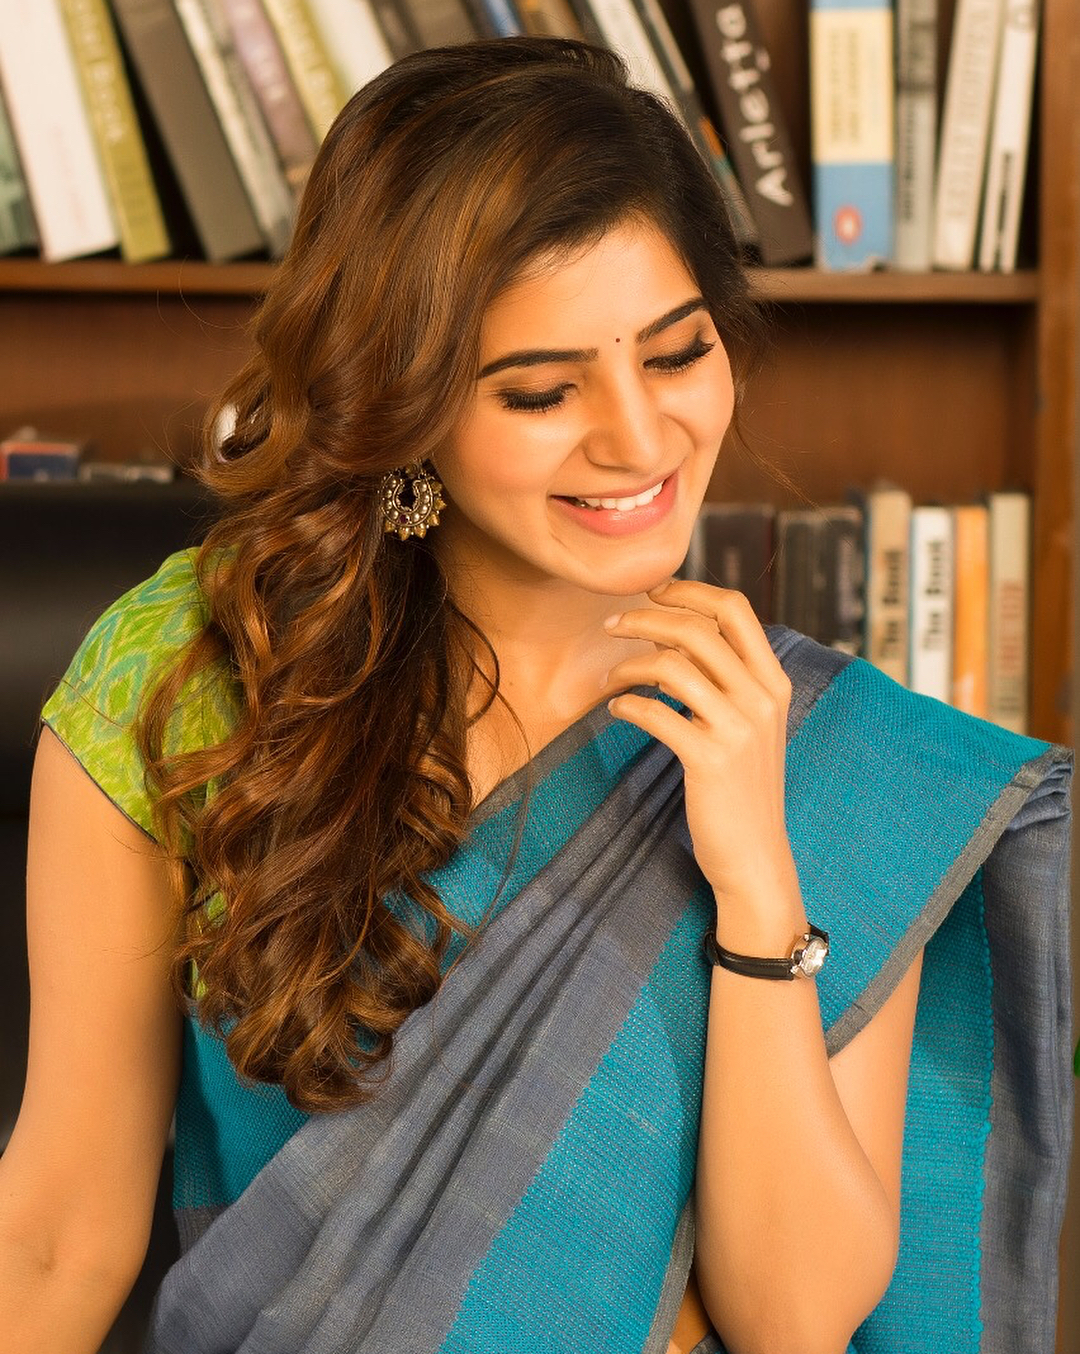 Samantha  Photos | Samantha images